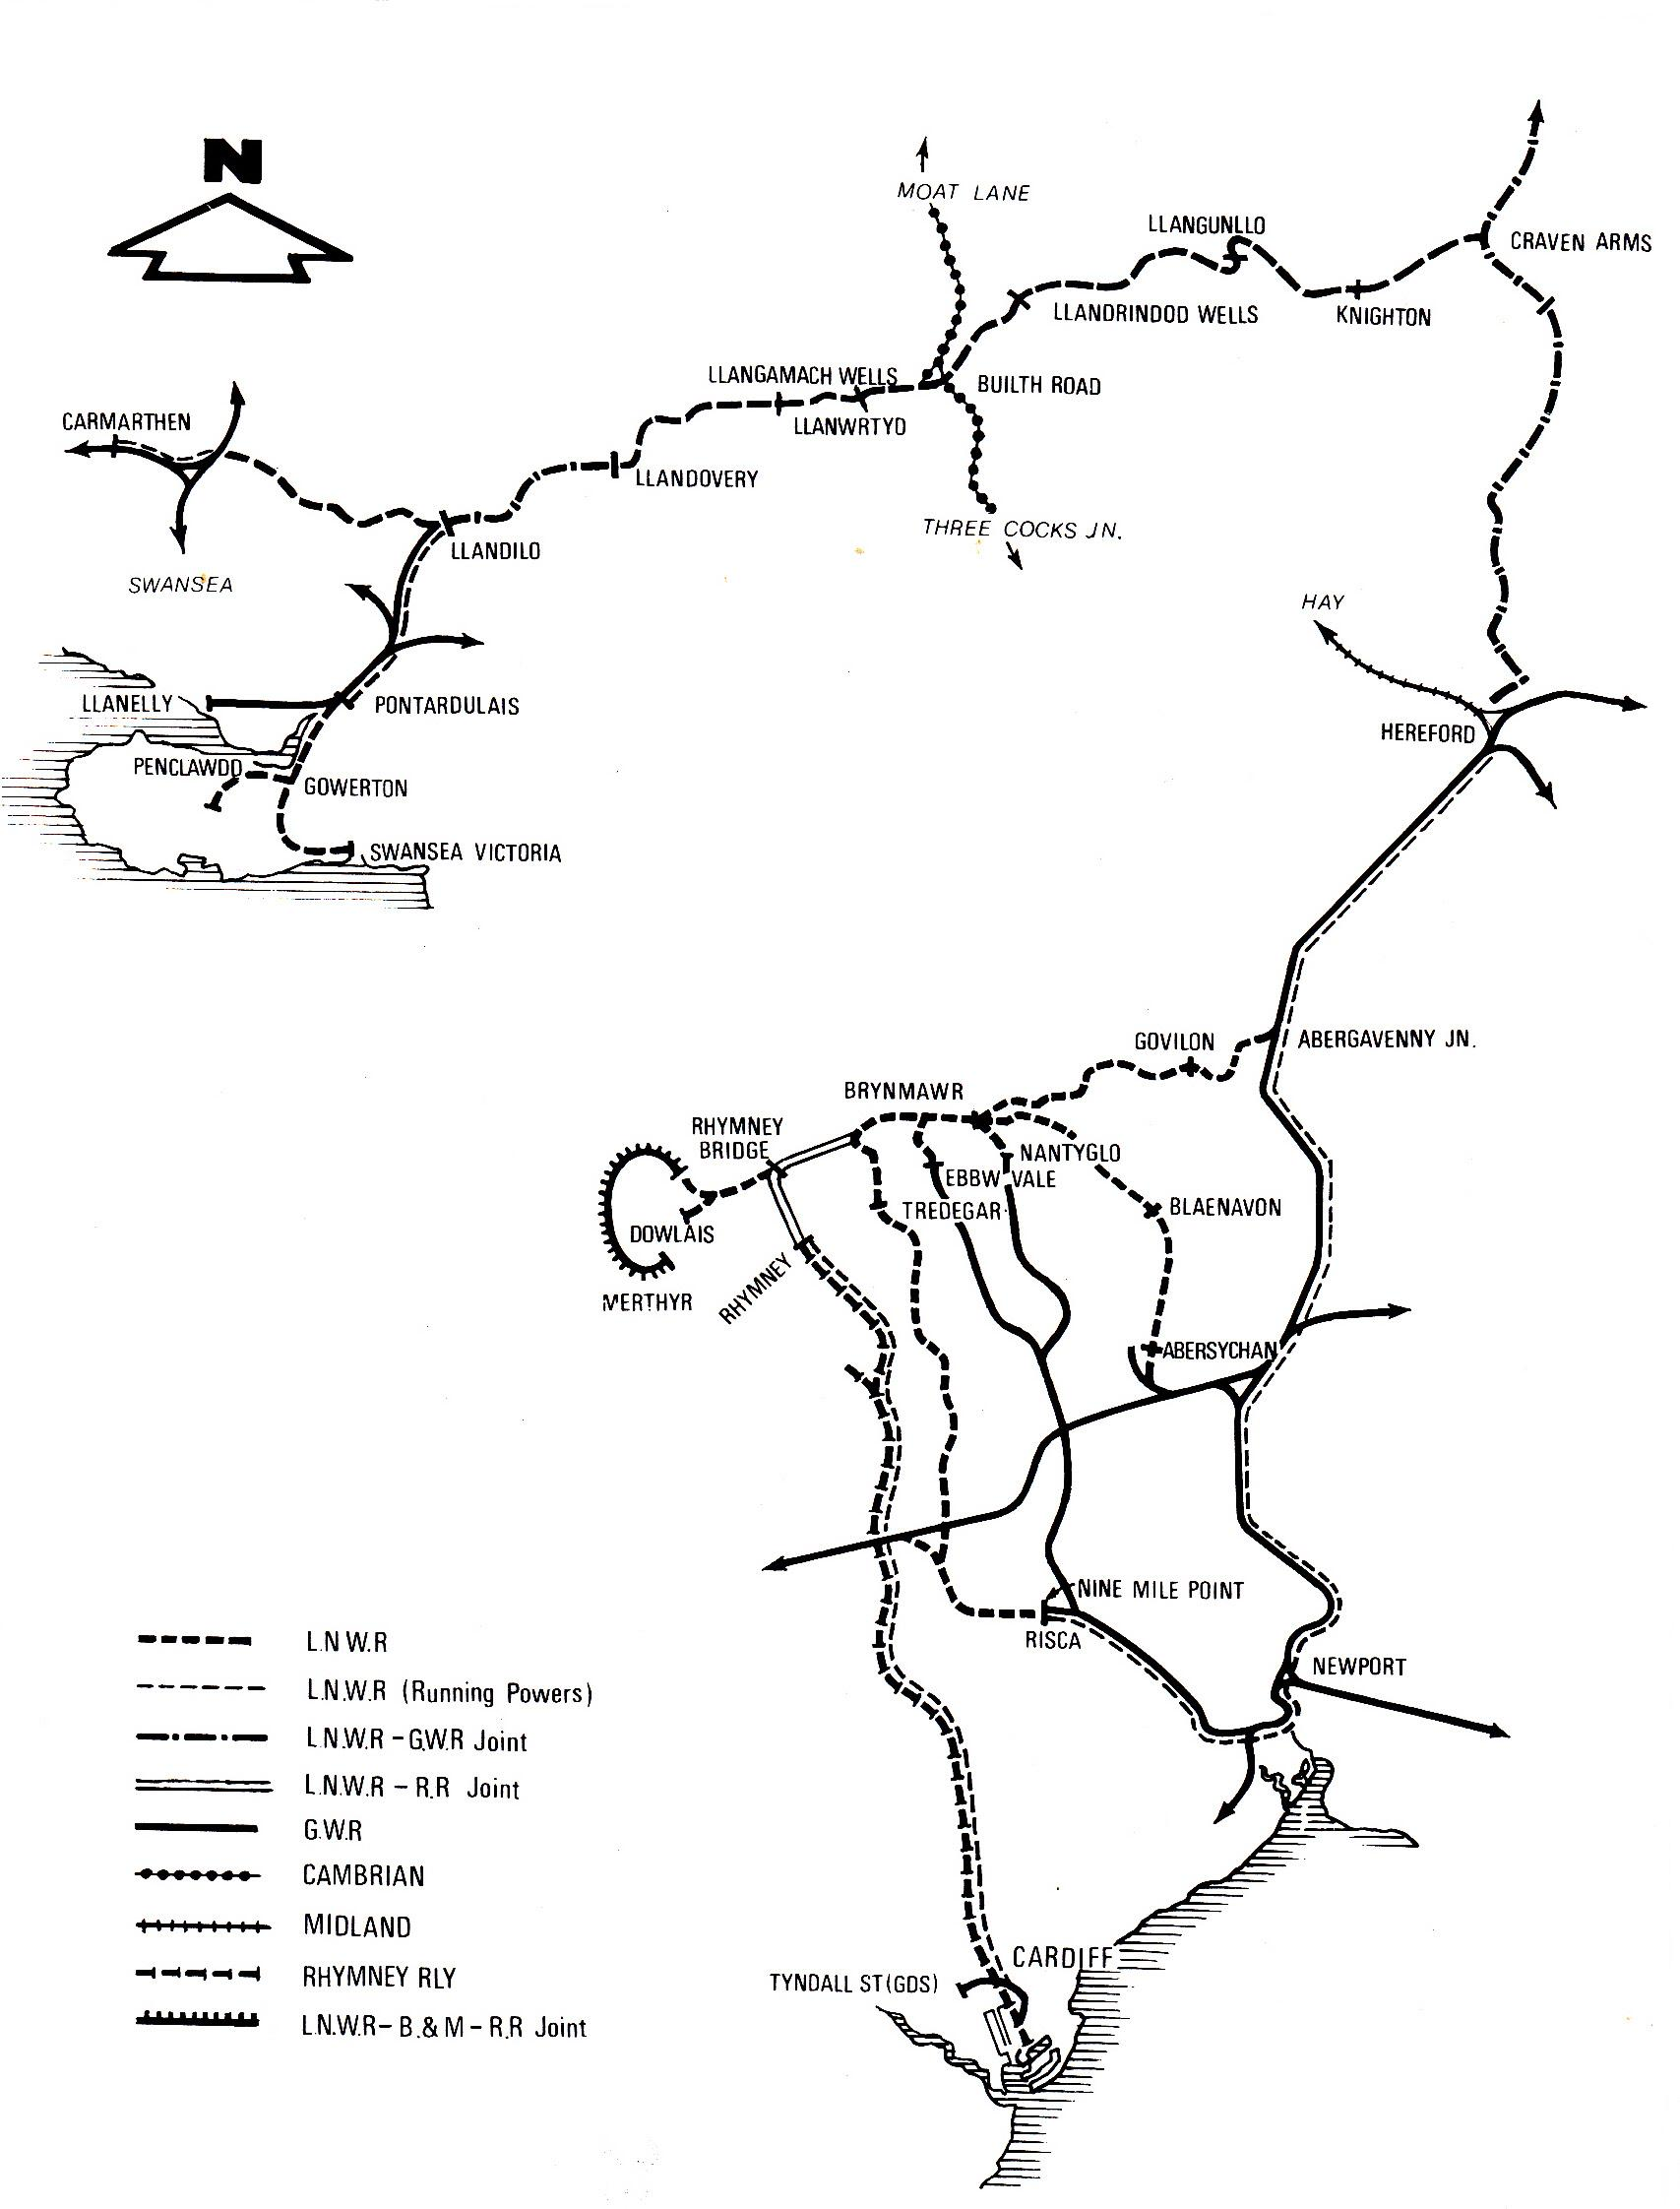 LNWR Central and South Wales Map